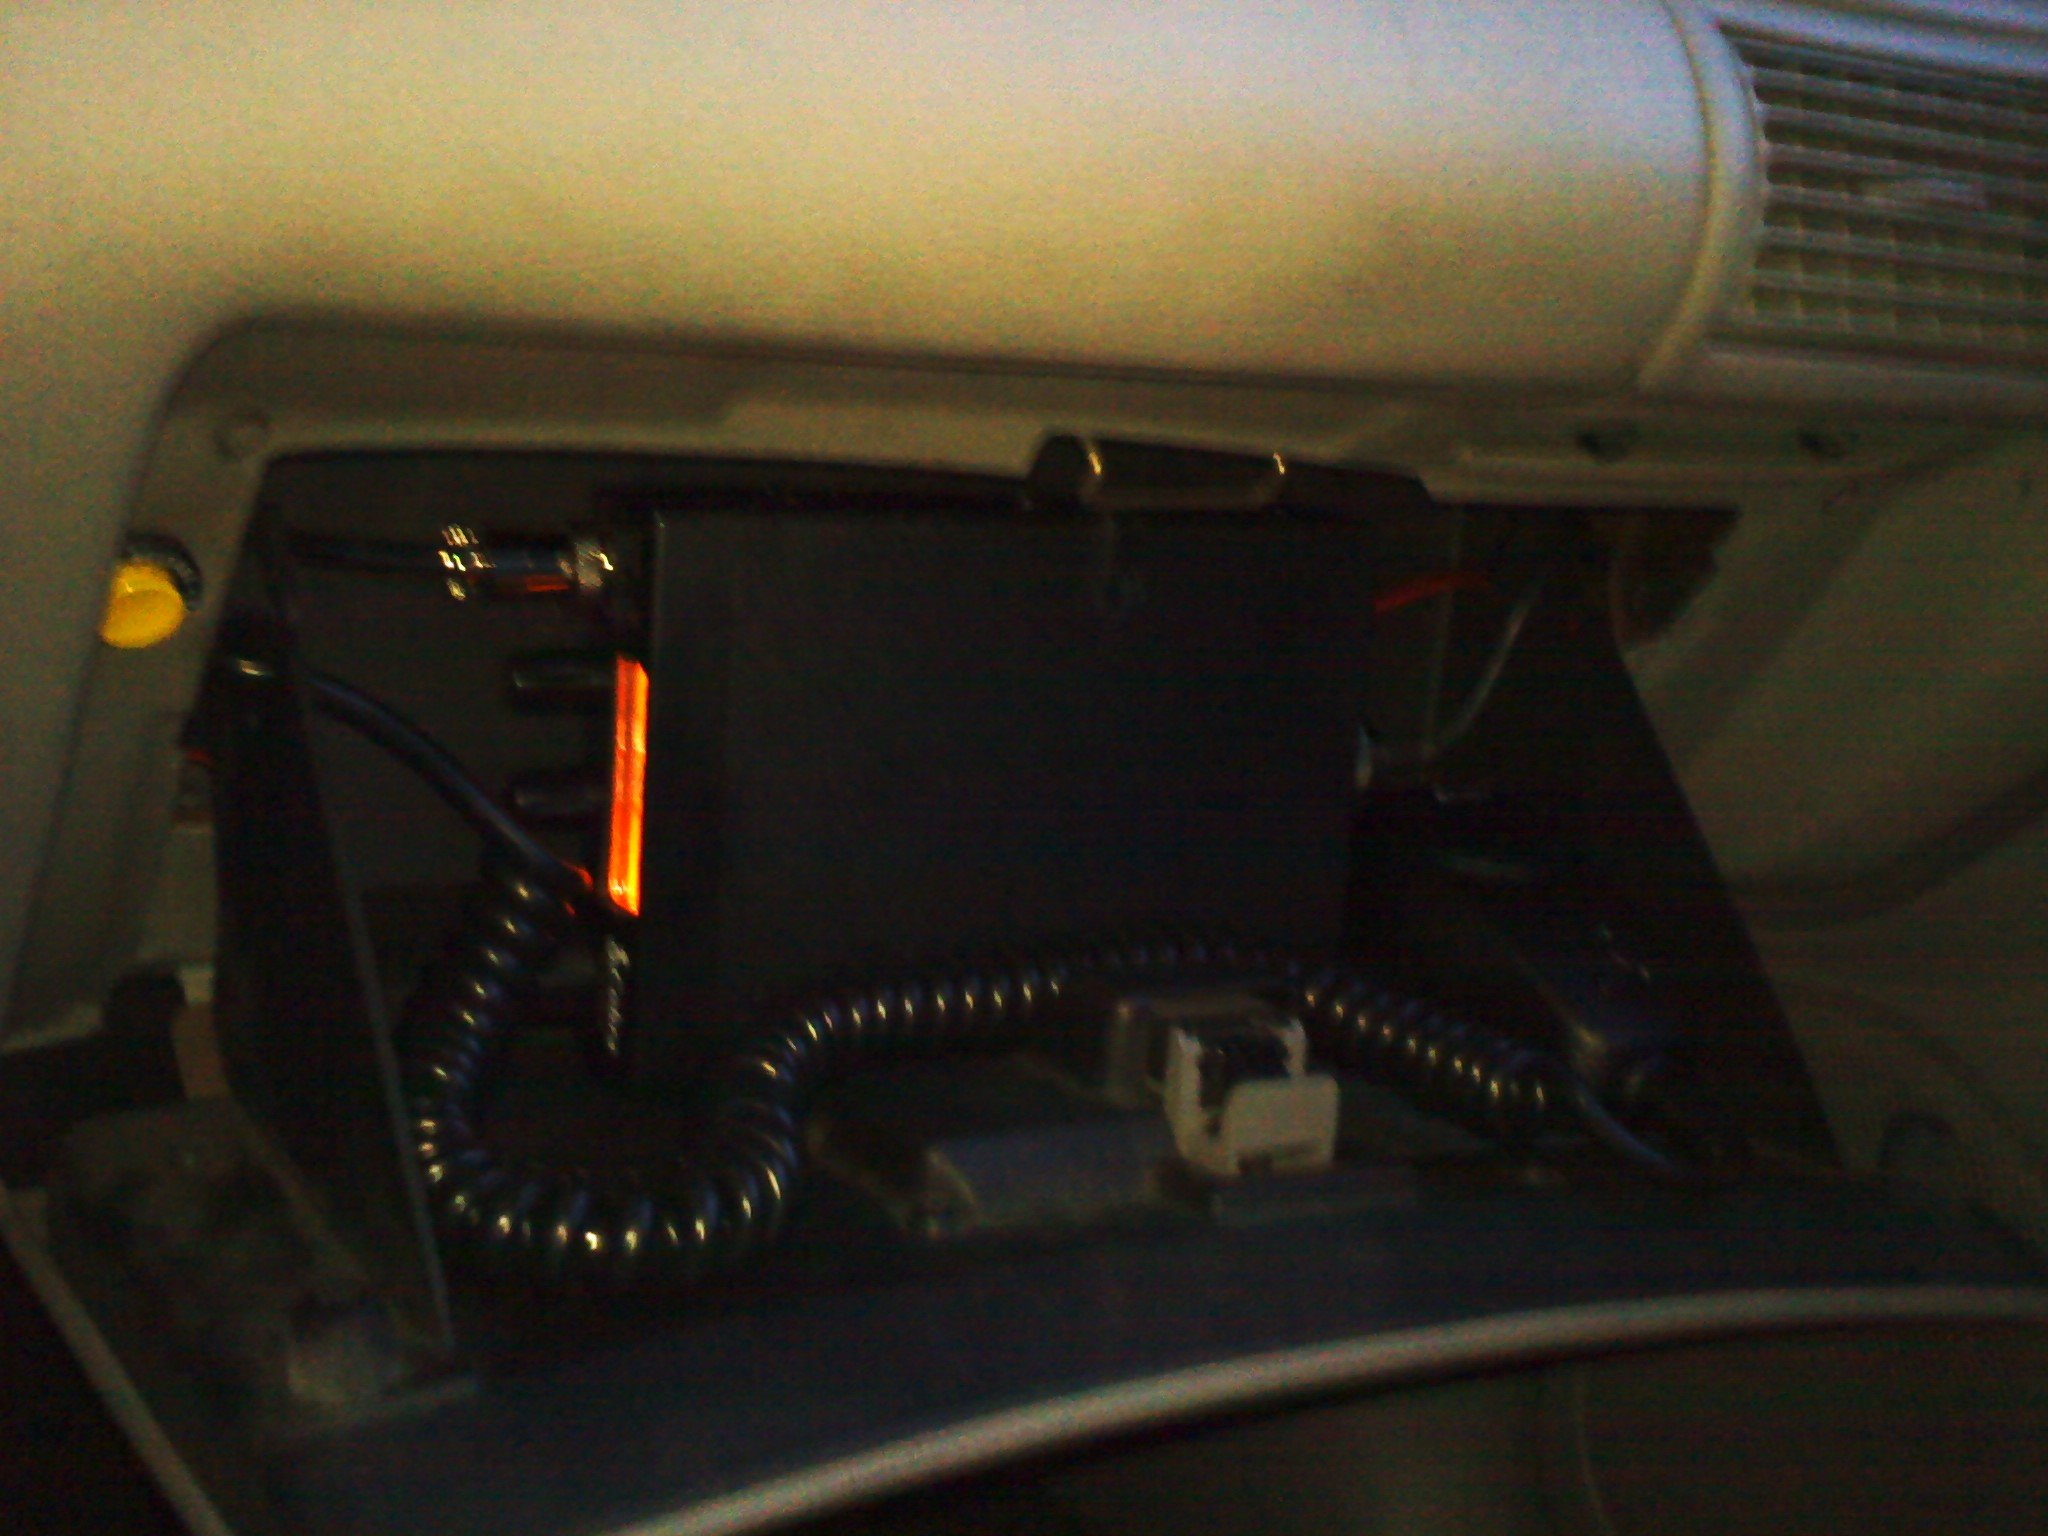 95 Mustang Fuse Box Under Dash Trusted Wiring Diagram 2003 Grand Am 2000 Archive Of Automotive U2022